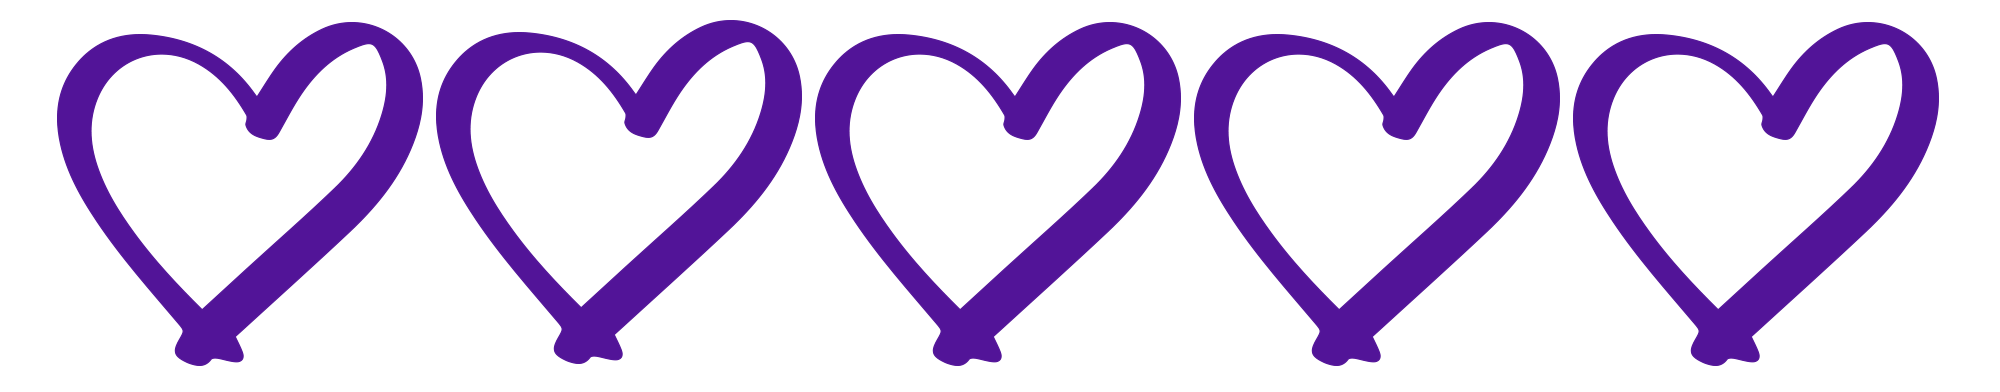 5 hearts_purple.png